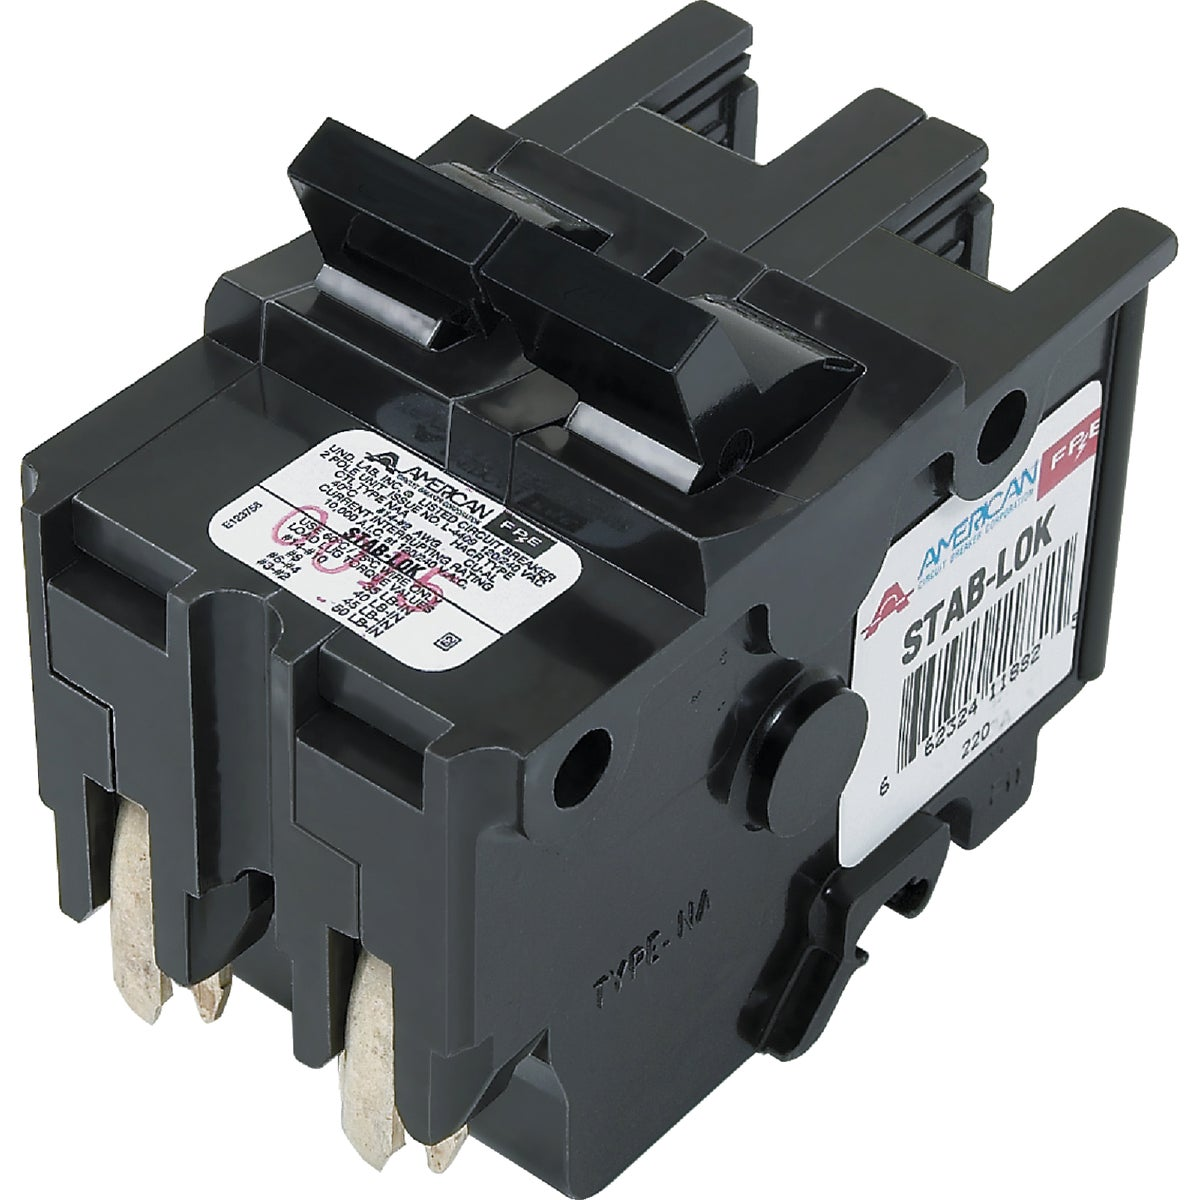 20A 2P CIRCUIT BREAKER - UBIF220N by Connecticut Electric